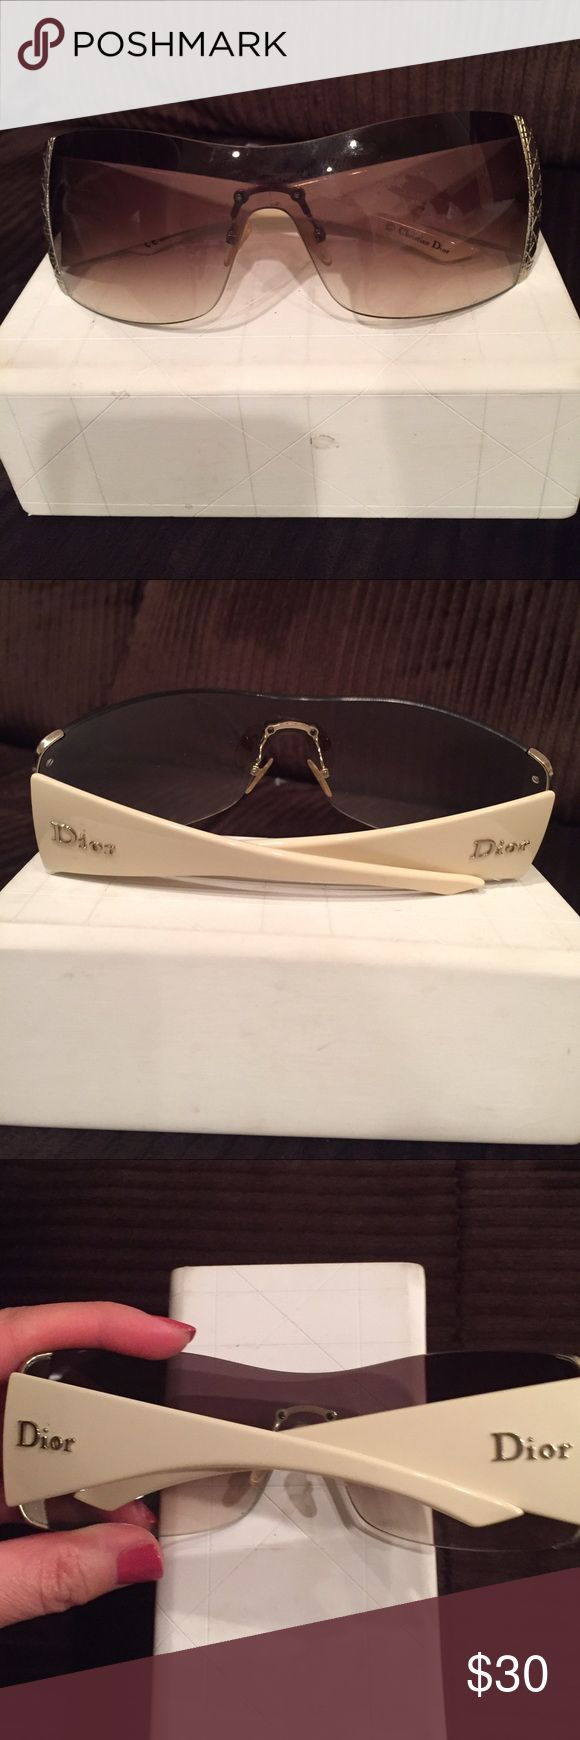 Christian Dior sunglasses Christian Dior sunglasses older style in a good condition and yes it's authentic Christian Dior Accessories Sunglasses